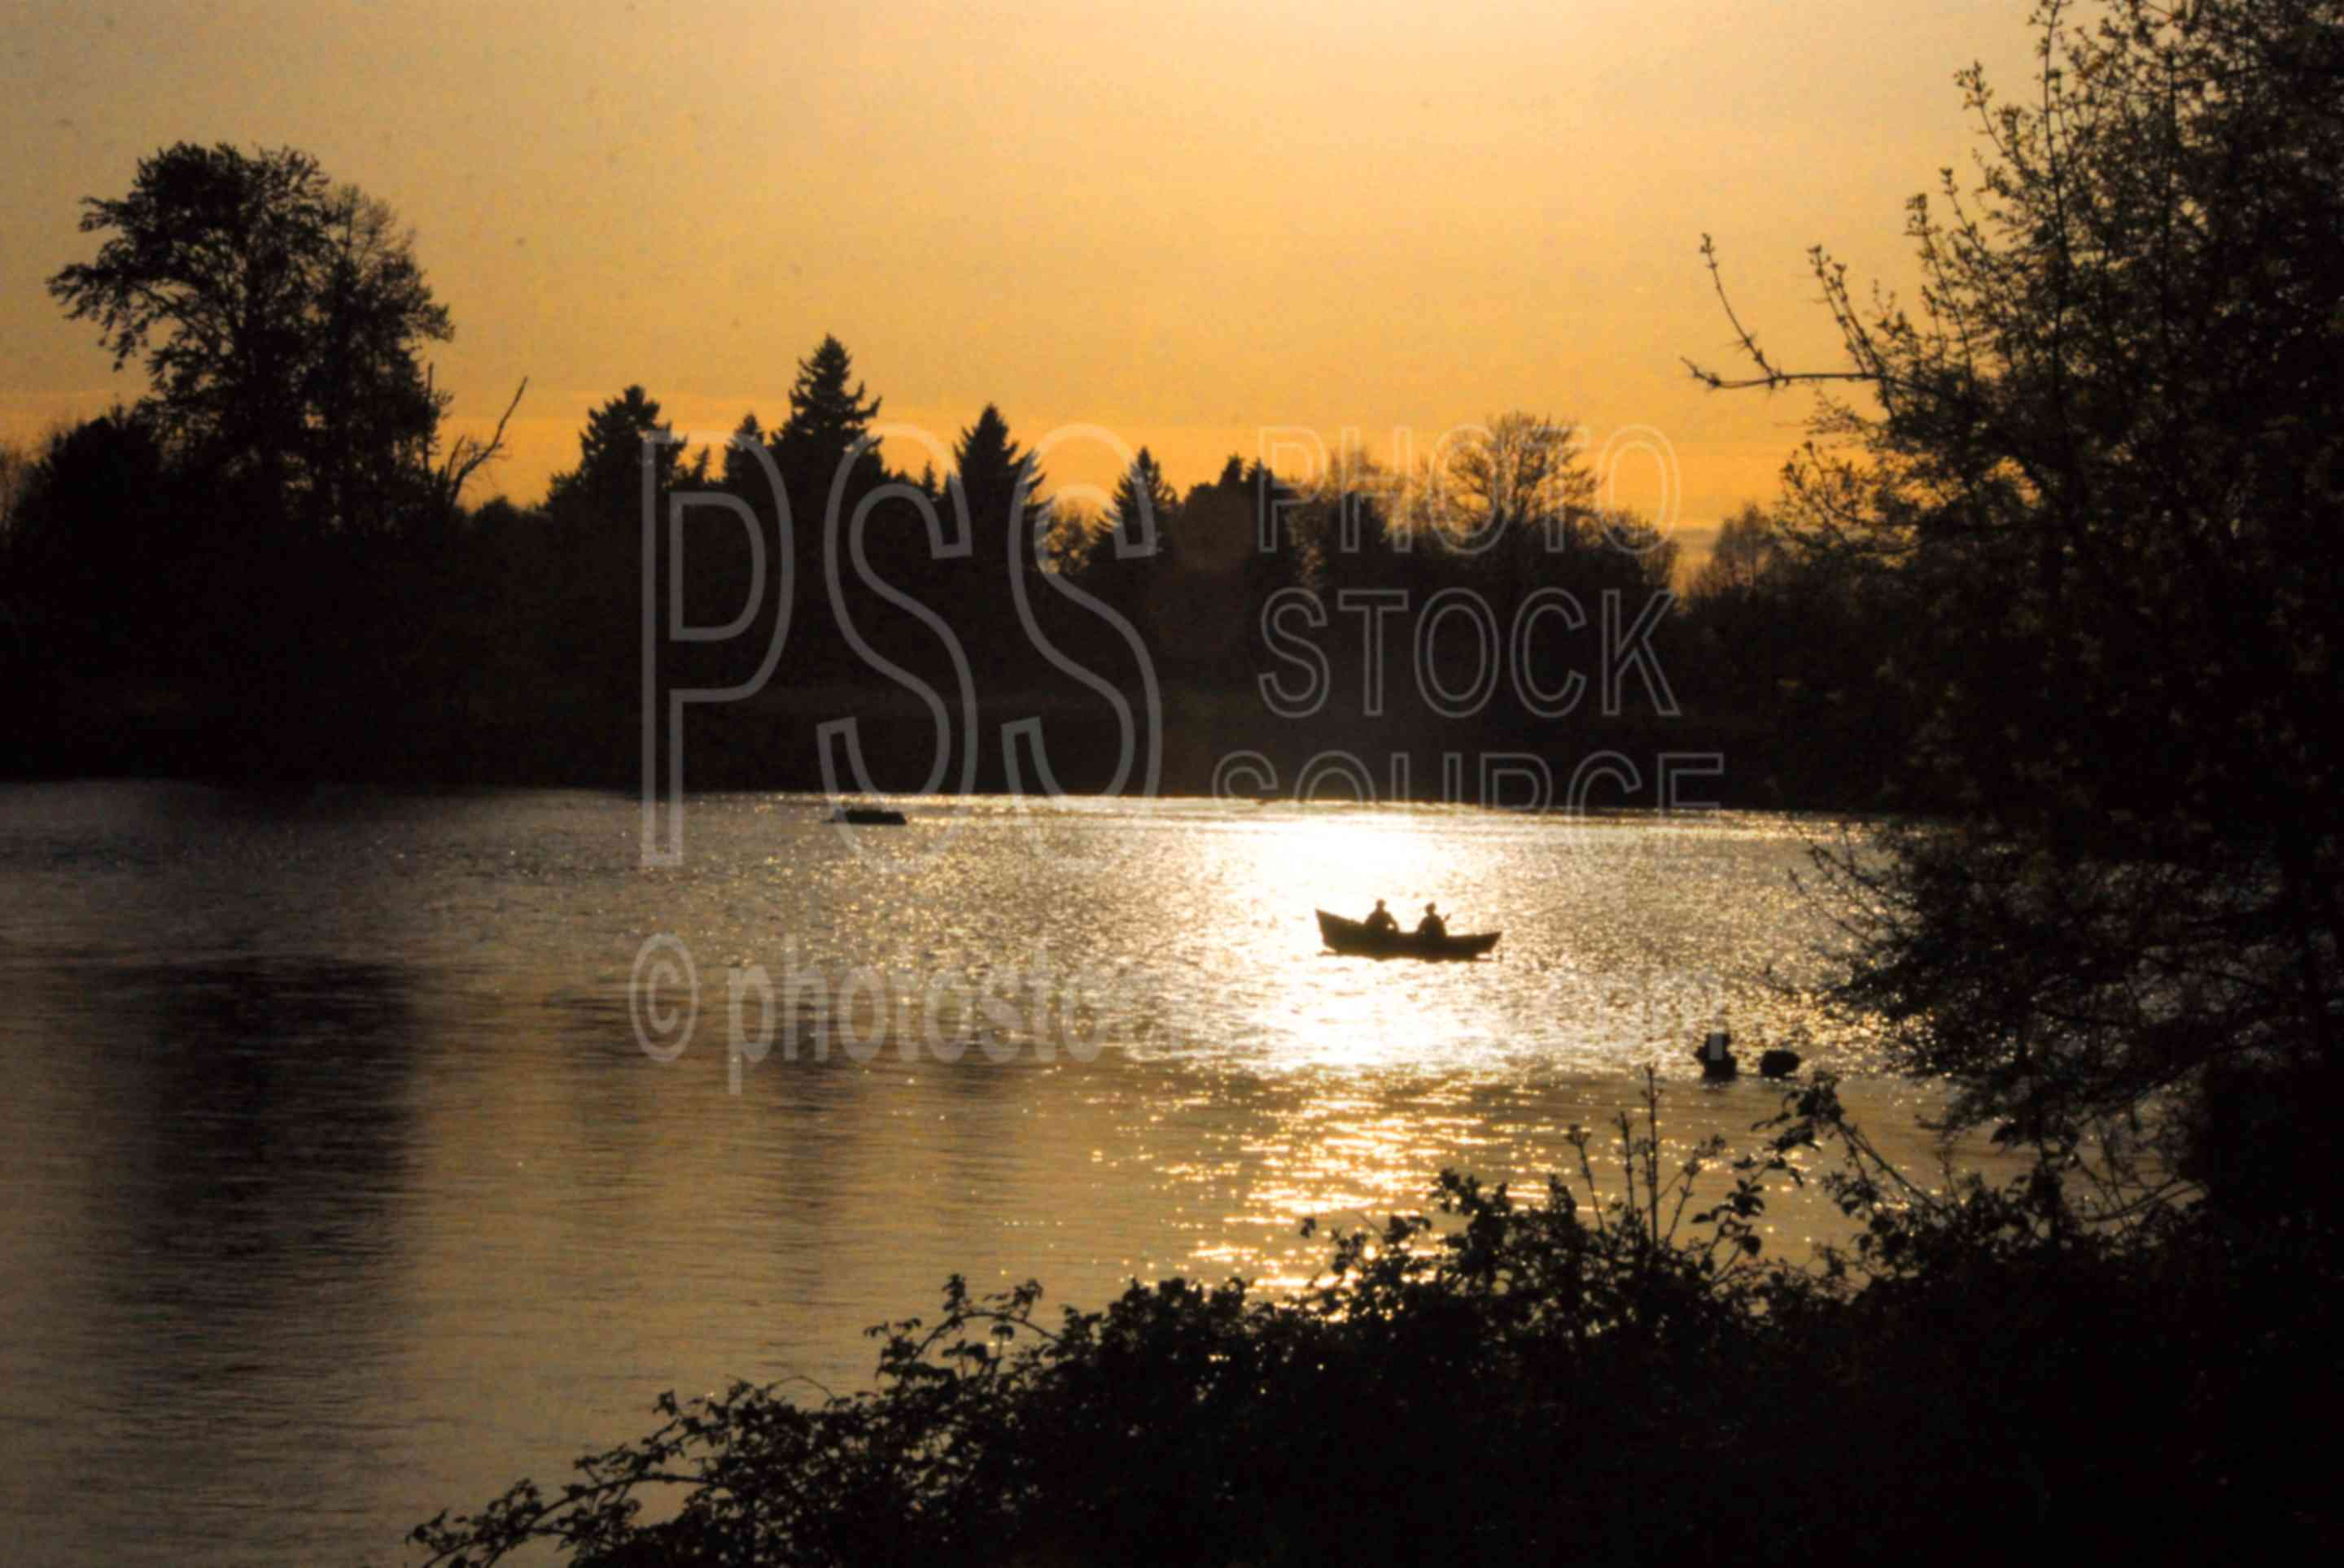 River Boat Silhouette,river,boat,fishing,fishermen,willamette river,drift boat,row boat,mckenzie river boat,lakes rivers